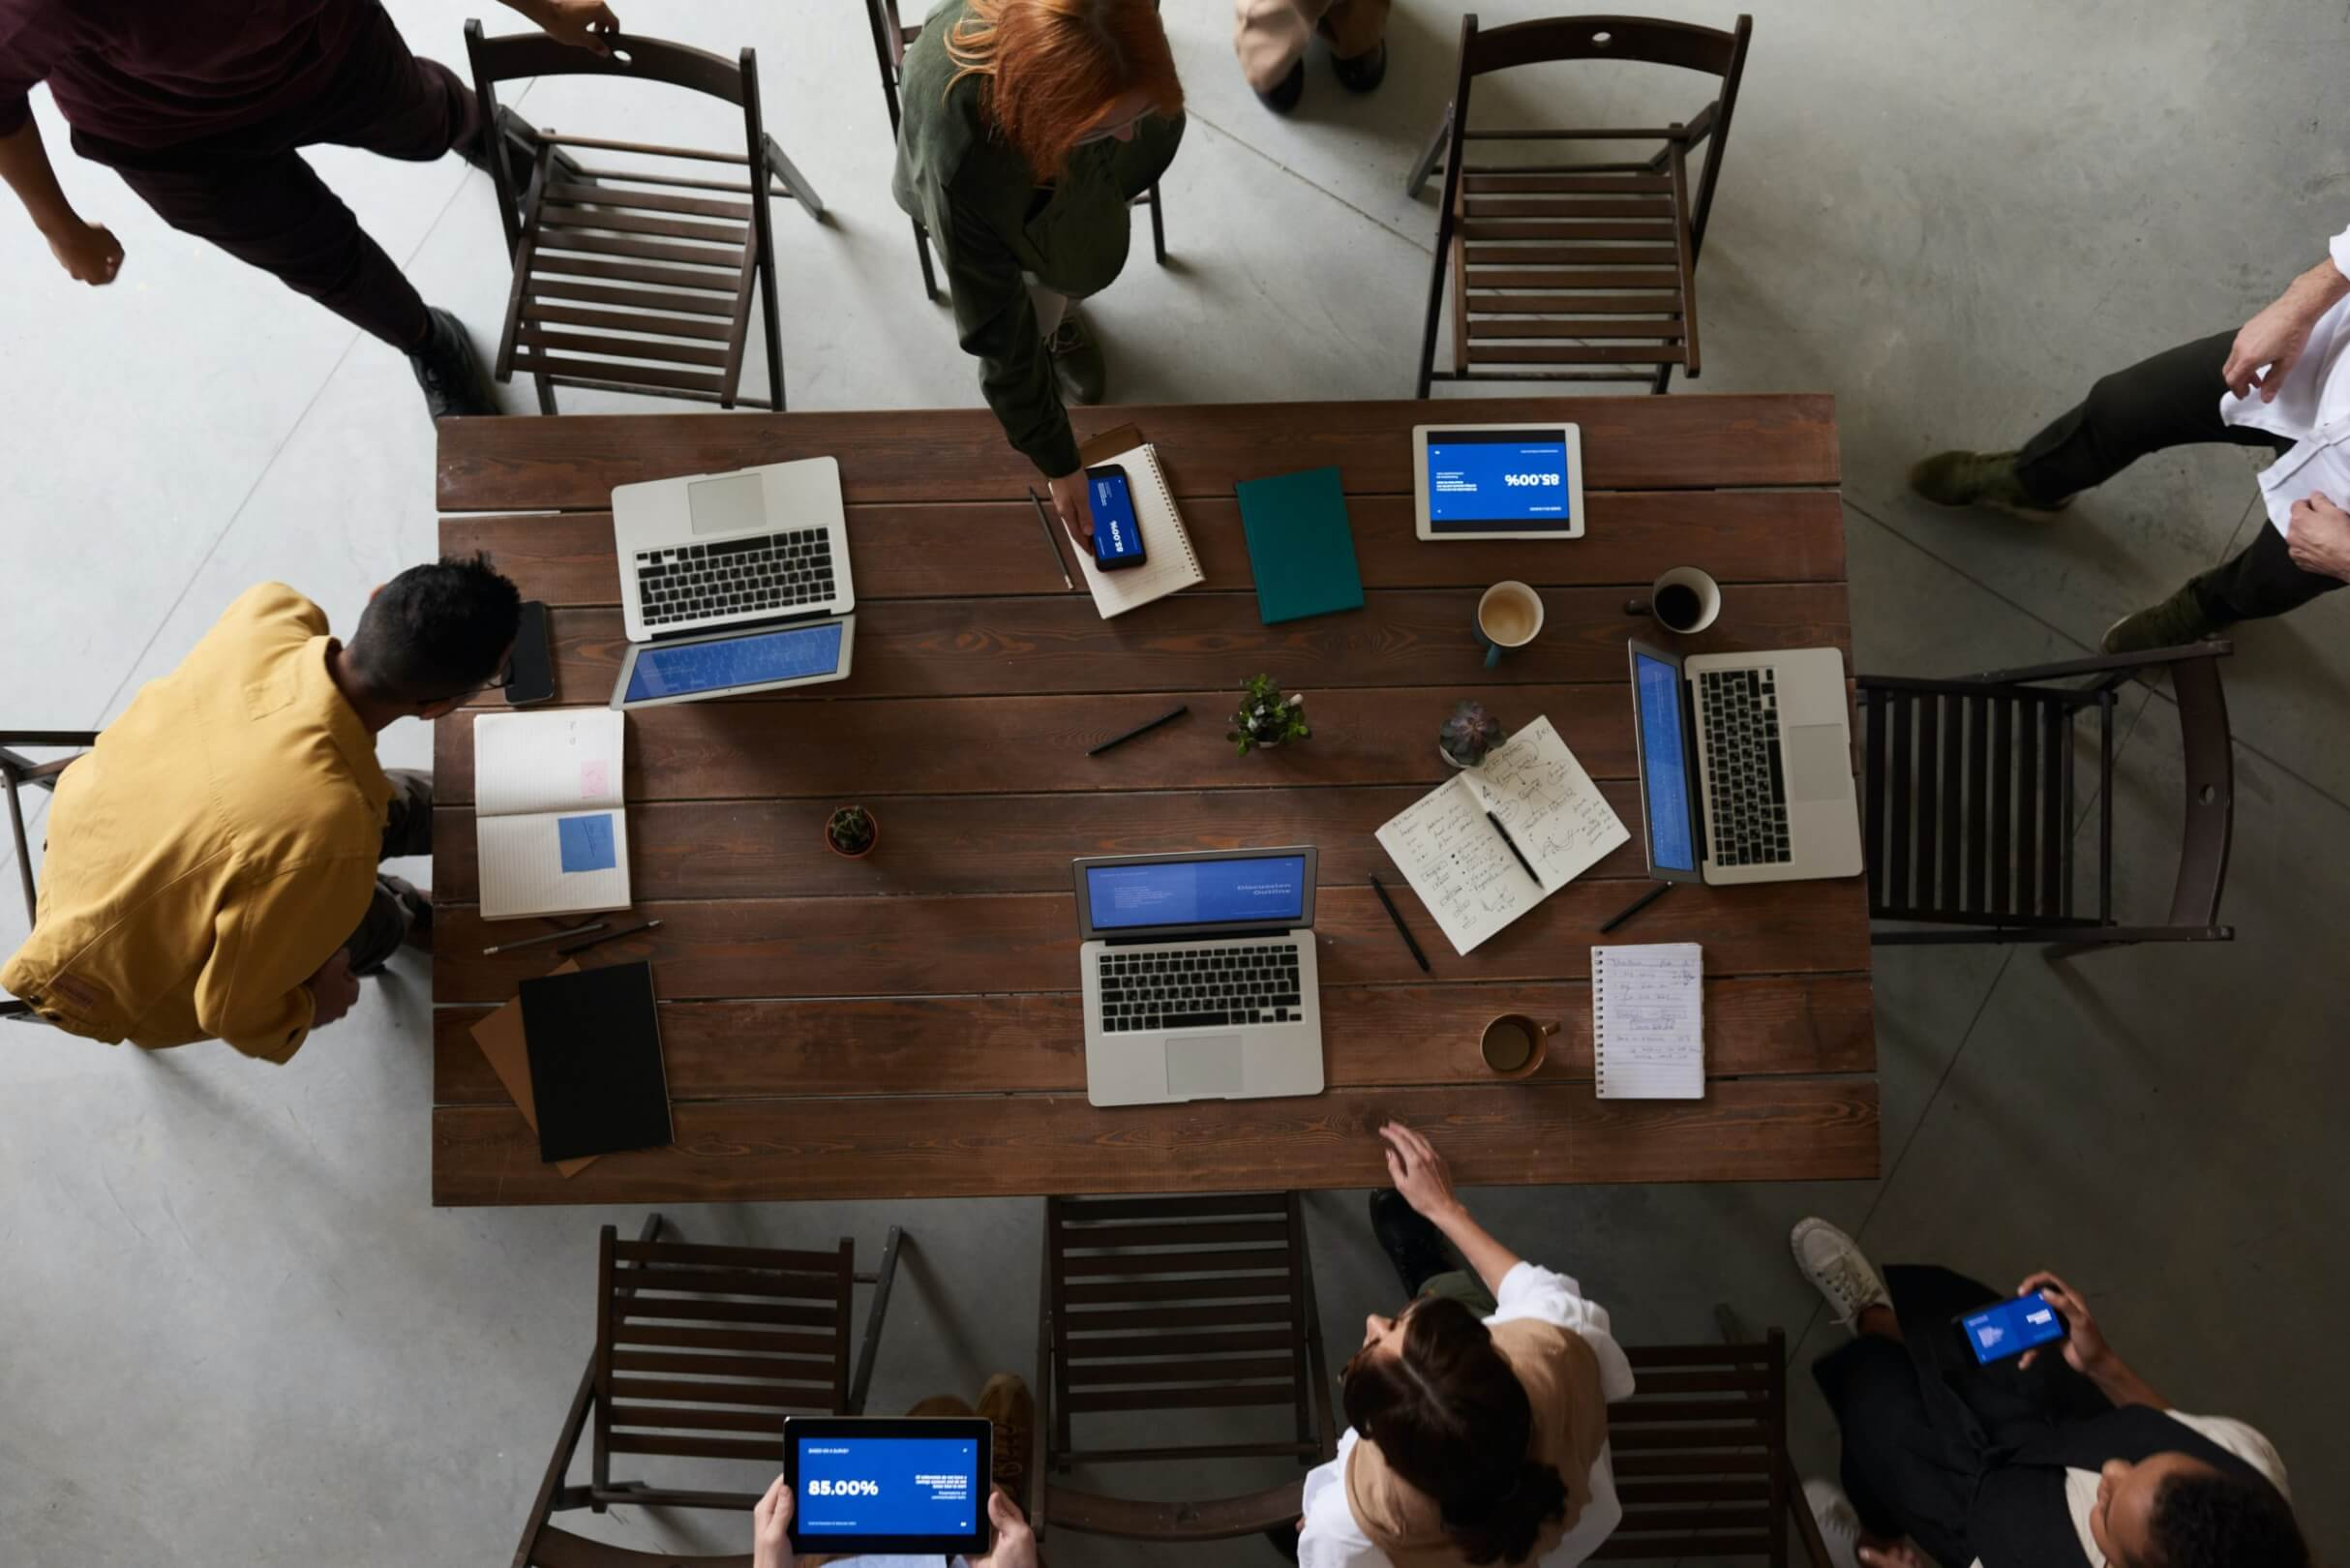 How to plan conference room usage in the age of social distancing